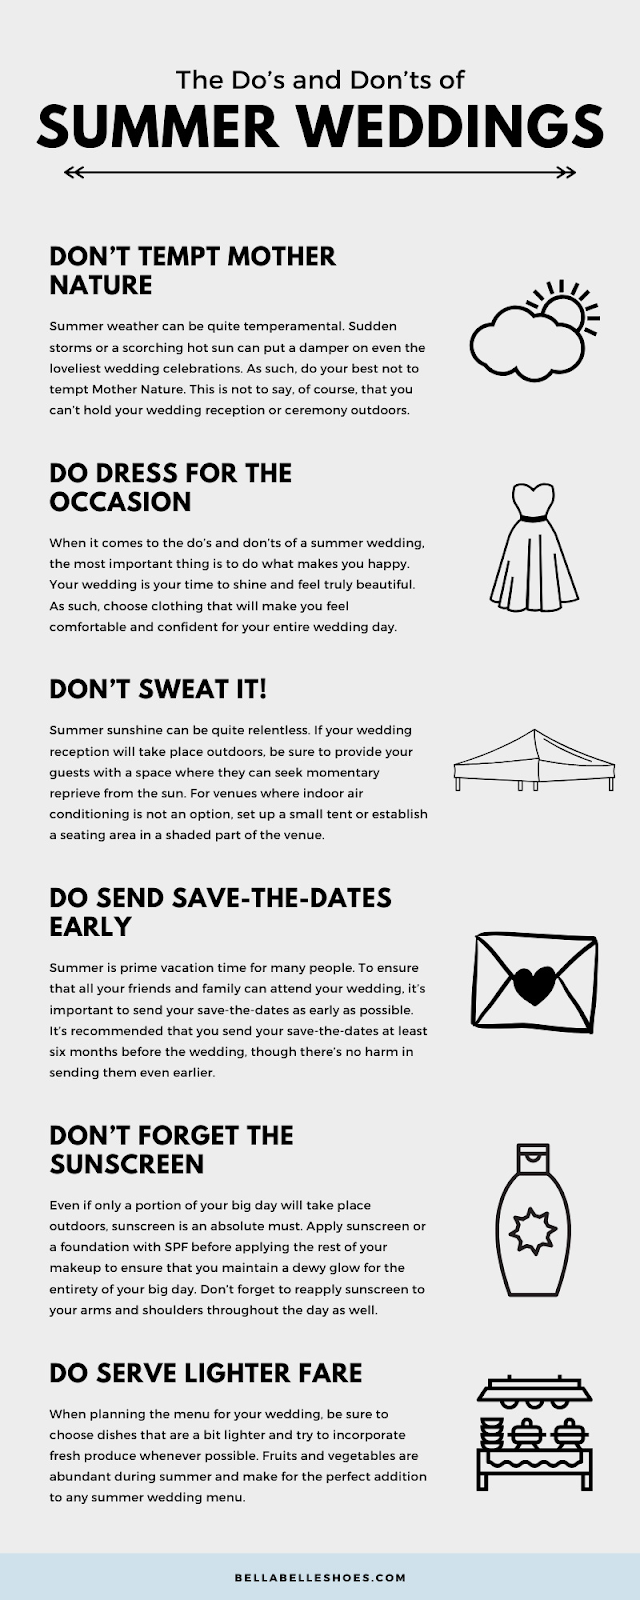 summer wedding do's and don'ts